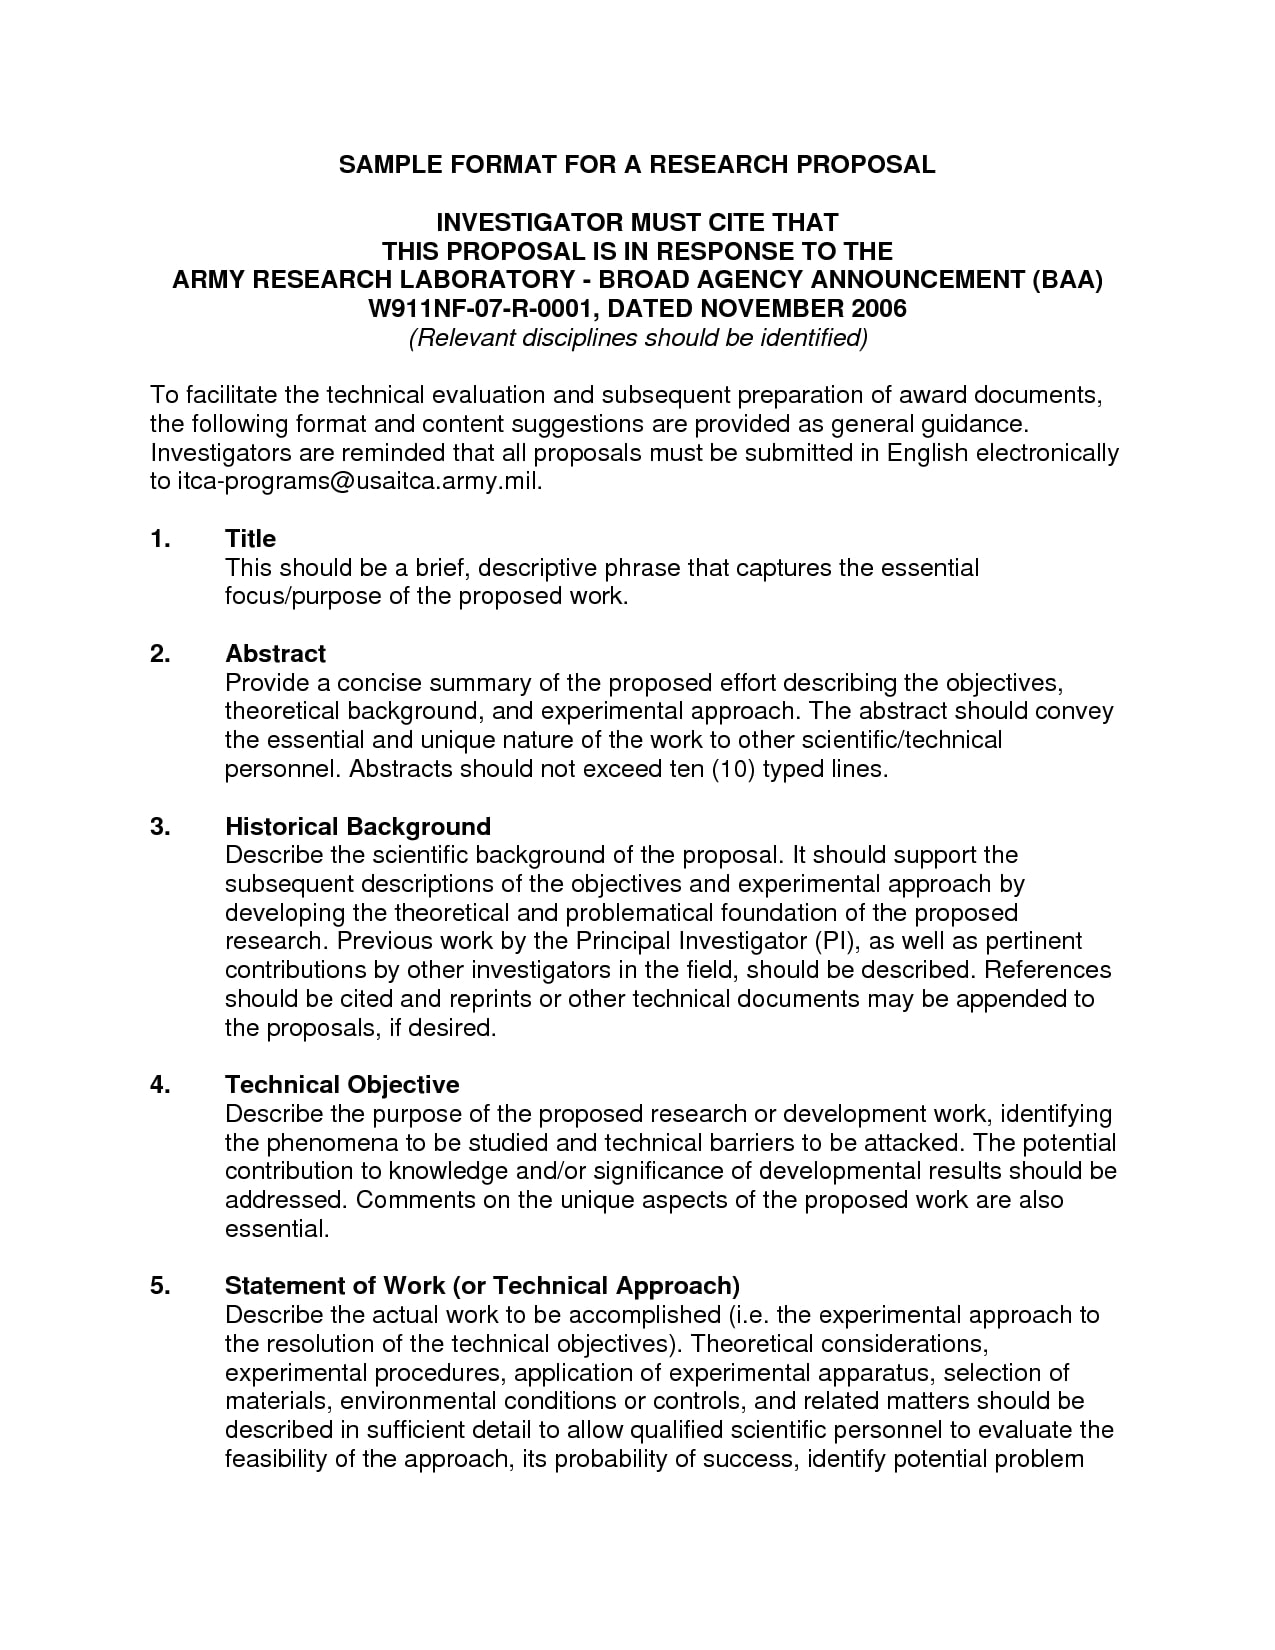 007 Proposal Research Paper Sample 6781019586 Action Astounding Pdf Mla In Education Full